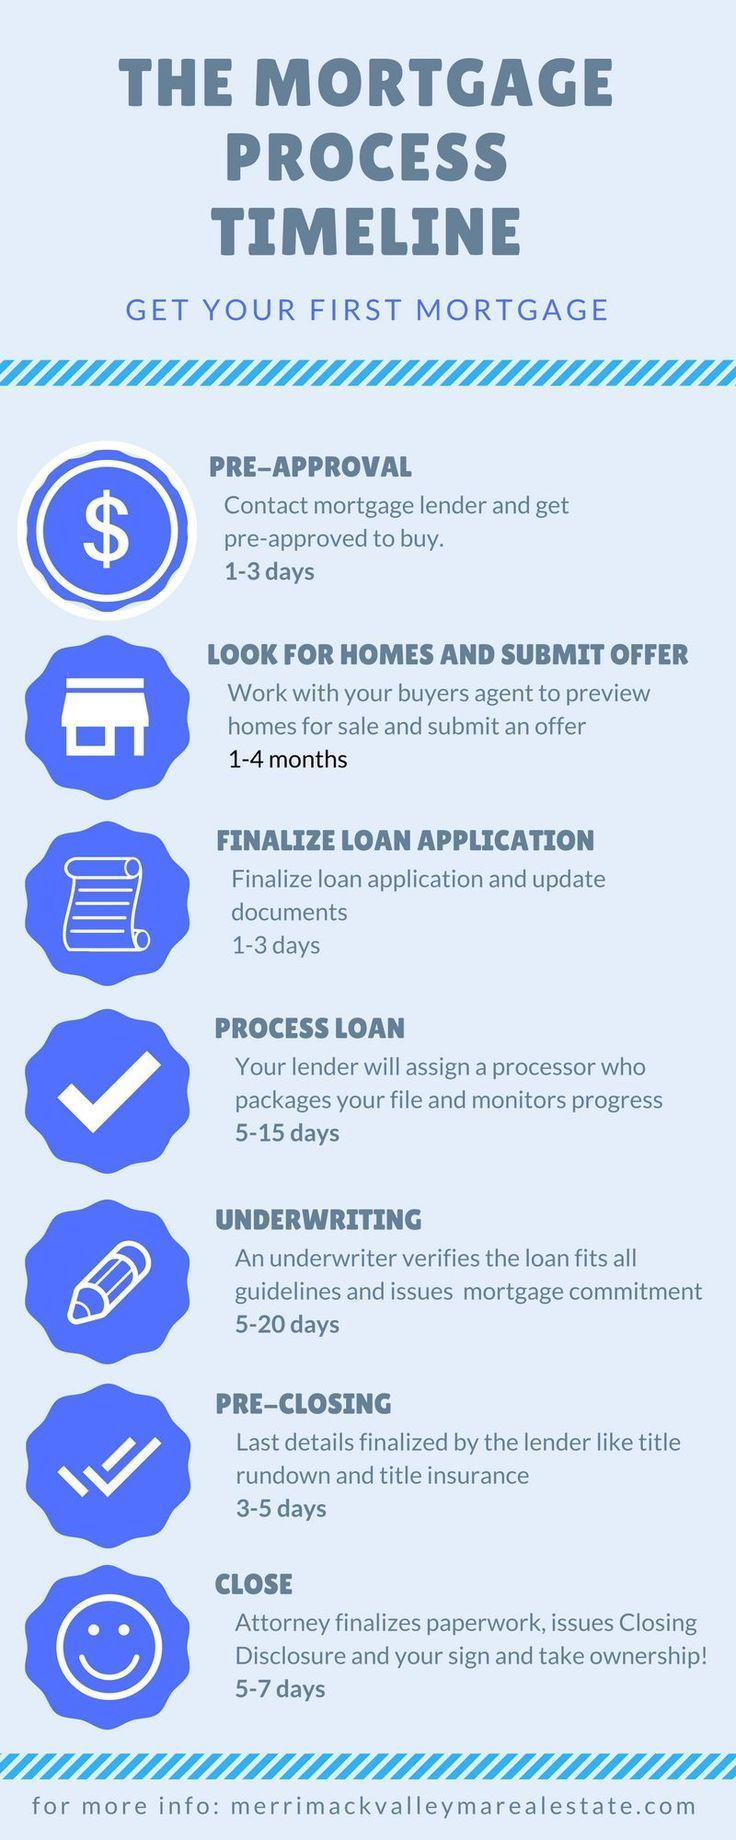 Mortgage Calculator Loan Cover Can Give You Peace Of Mind When Bought Correctly House Payment Ca Buying Your First Home Mortgage Process Home Buying Process